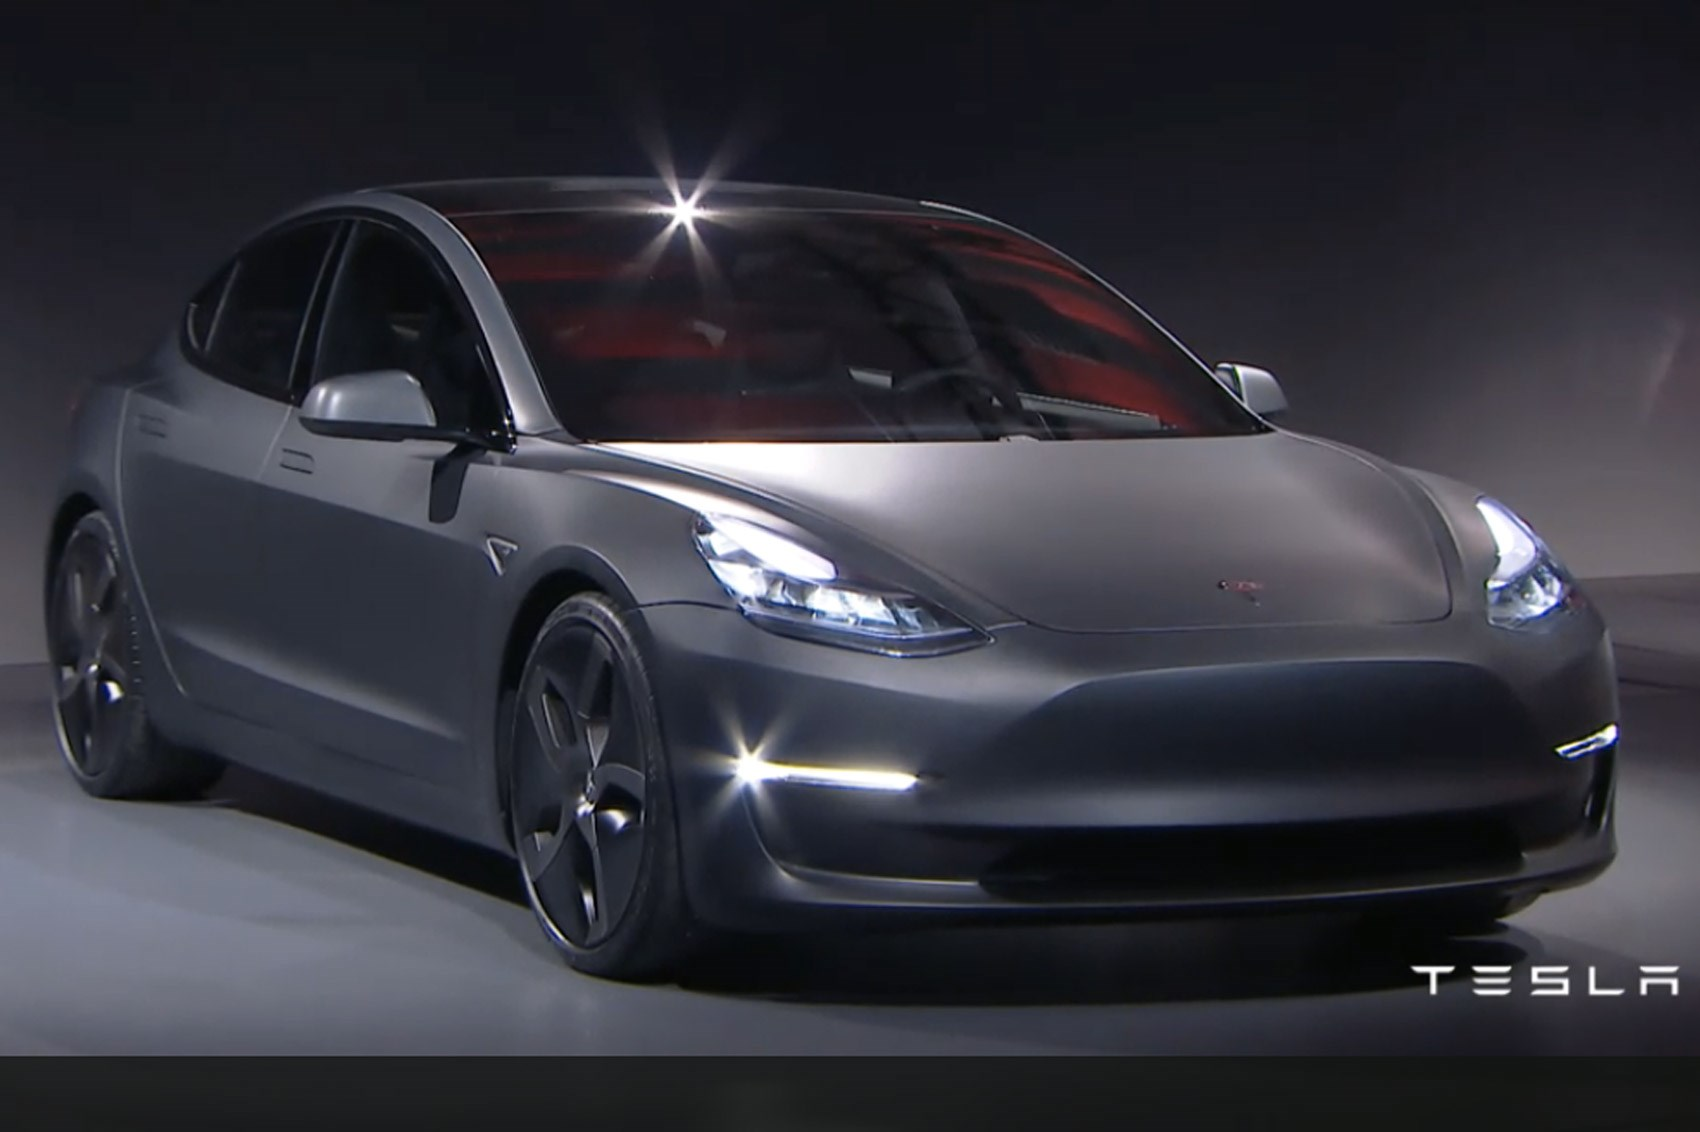 Suv Tesla Interior >> Tesla Model 3 specs: Elon Musk's budget EV is faster than we thought by CAR Magazine